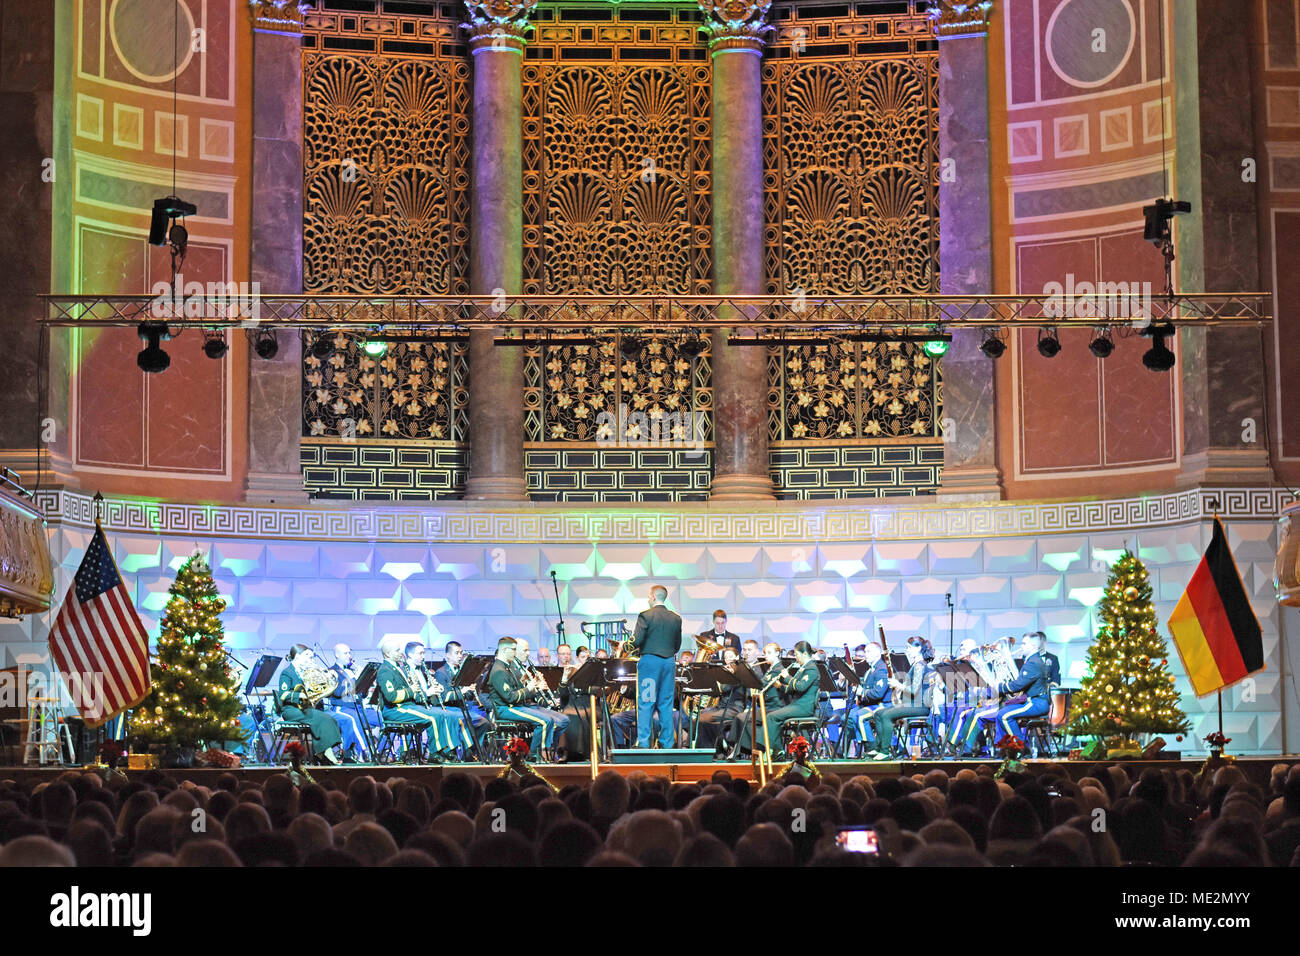 Christmas Concerts Near Me.The U S Army Europe Band And Chorus Presented Their Sounds